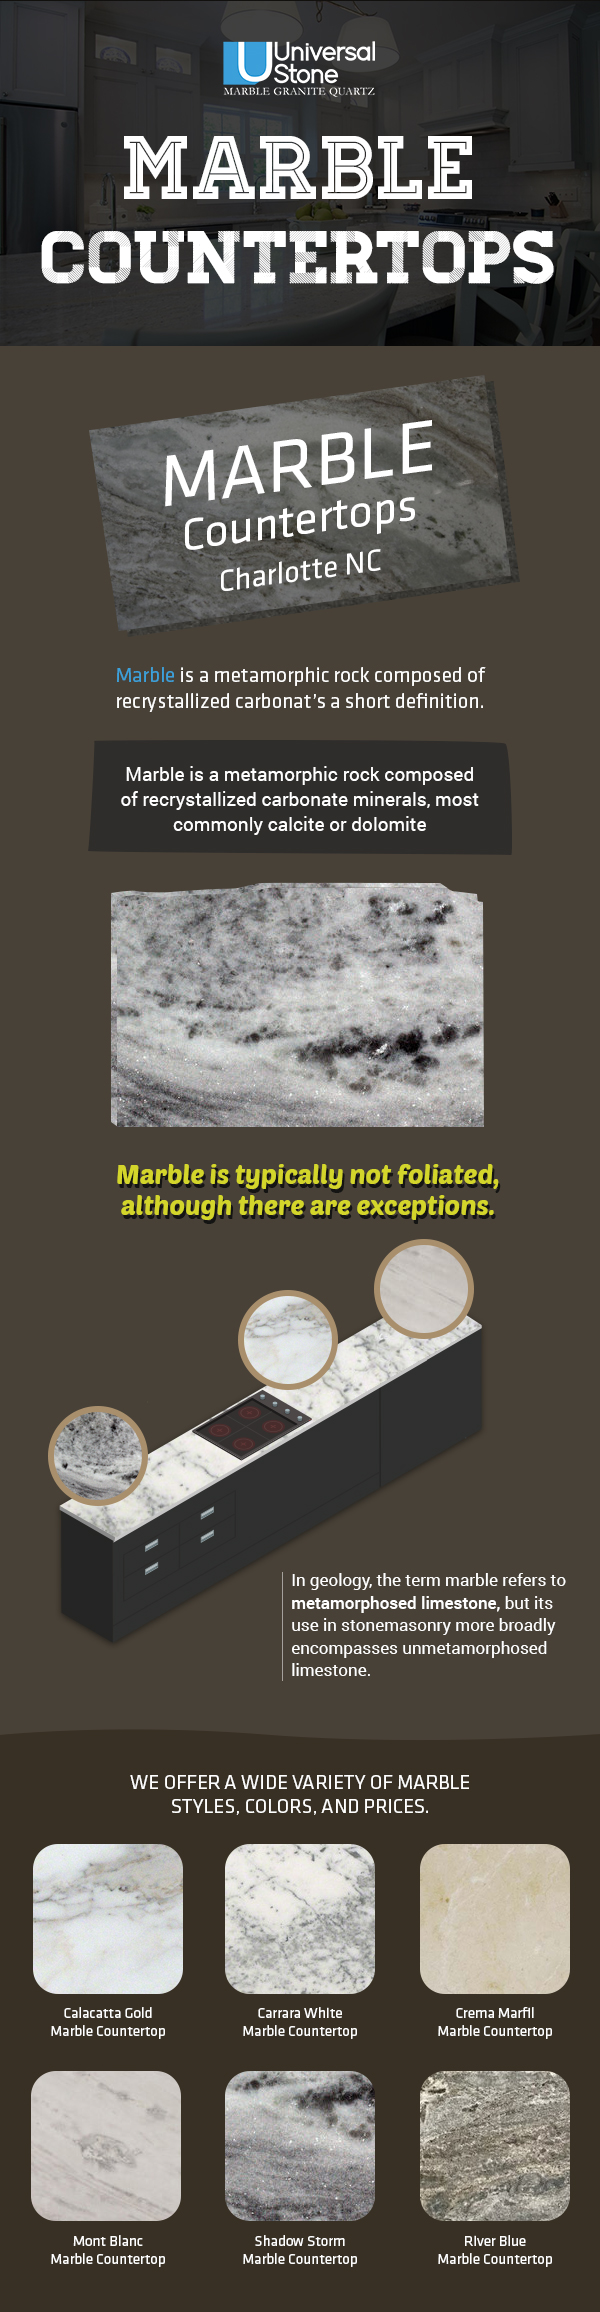 Contact Universal Stone for Quality Marble Countertops in Charlotte, NC